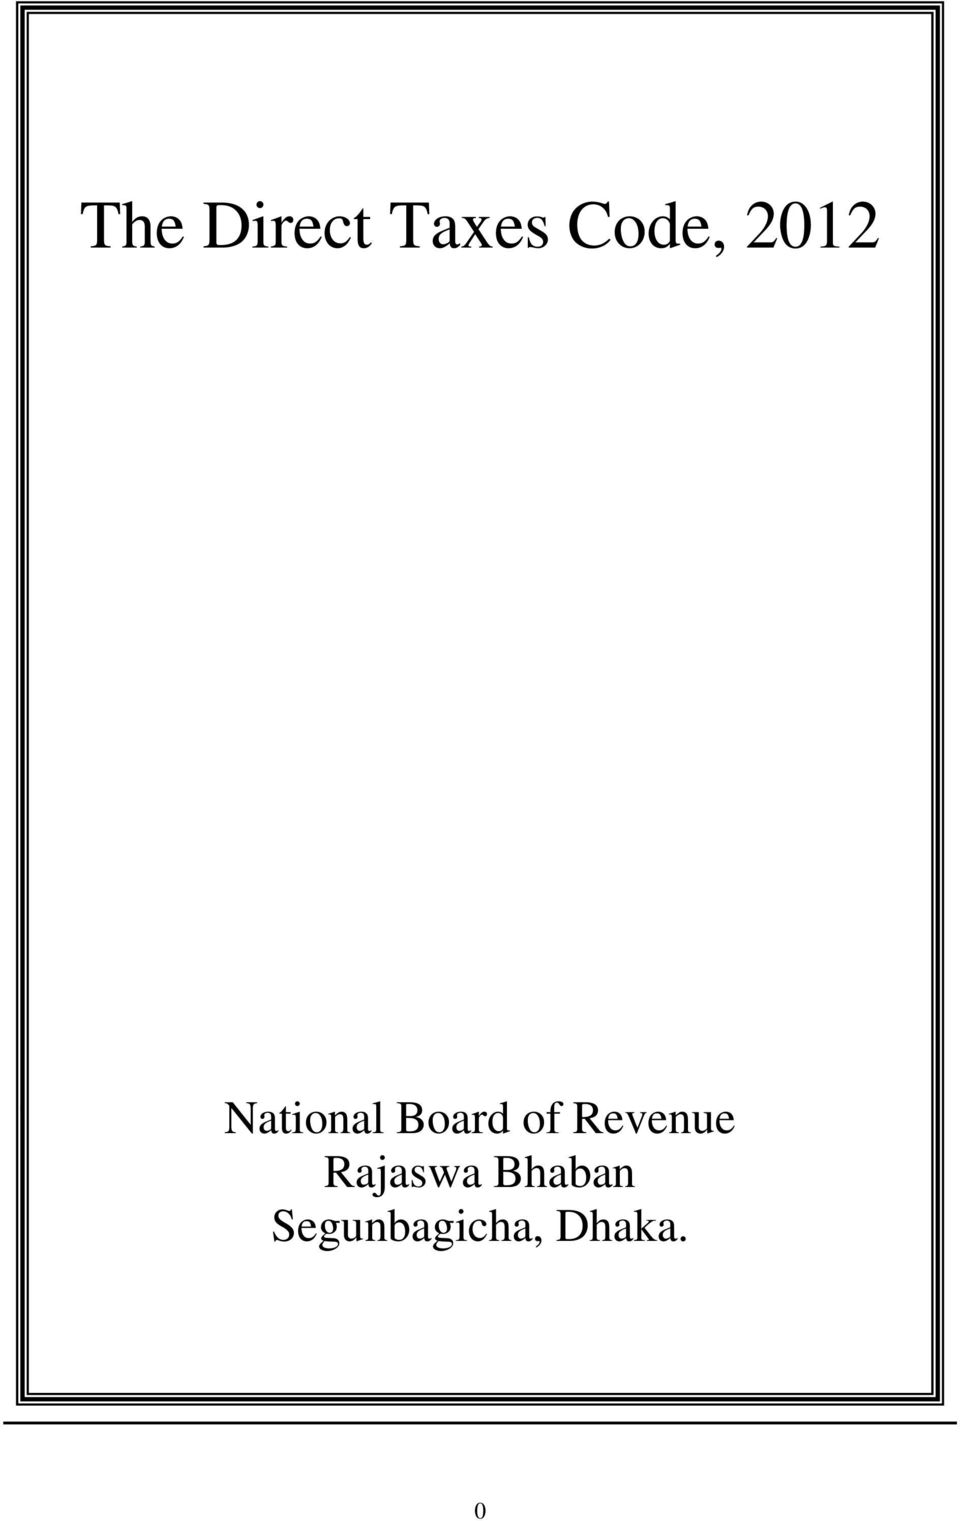 Revenue Rajaswa Bhaban